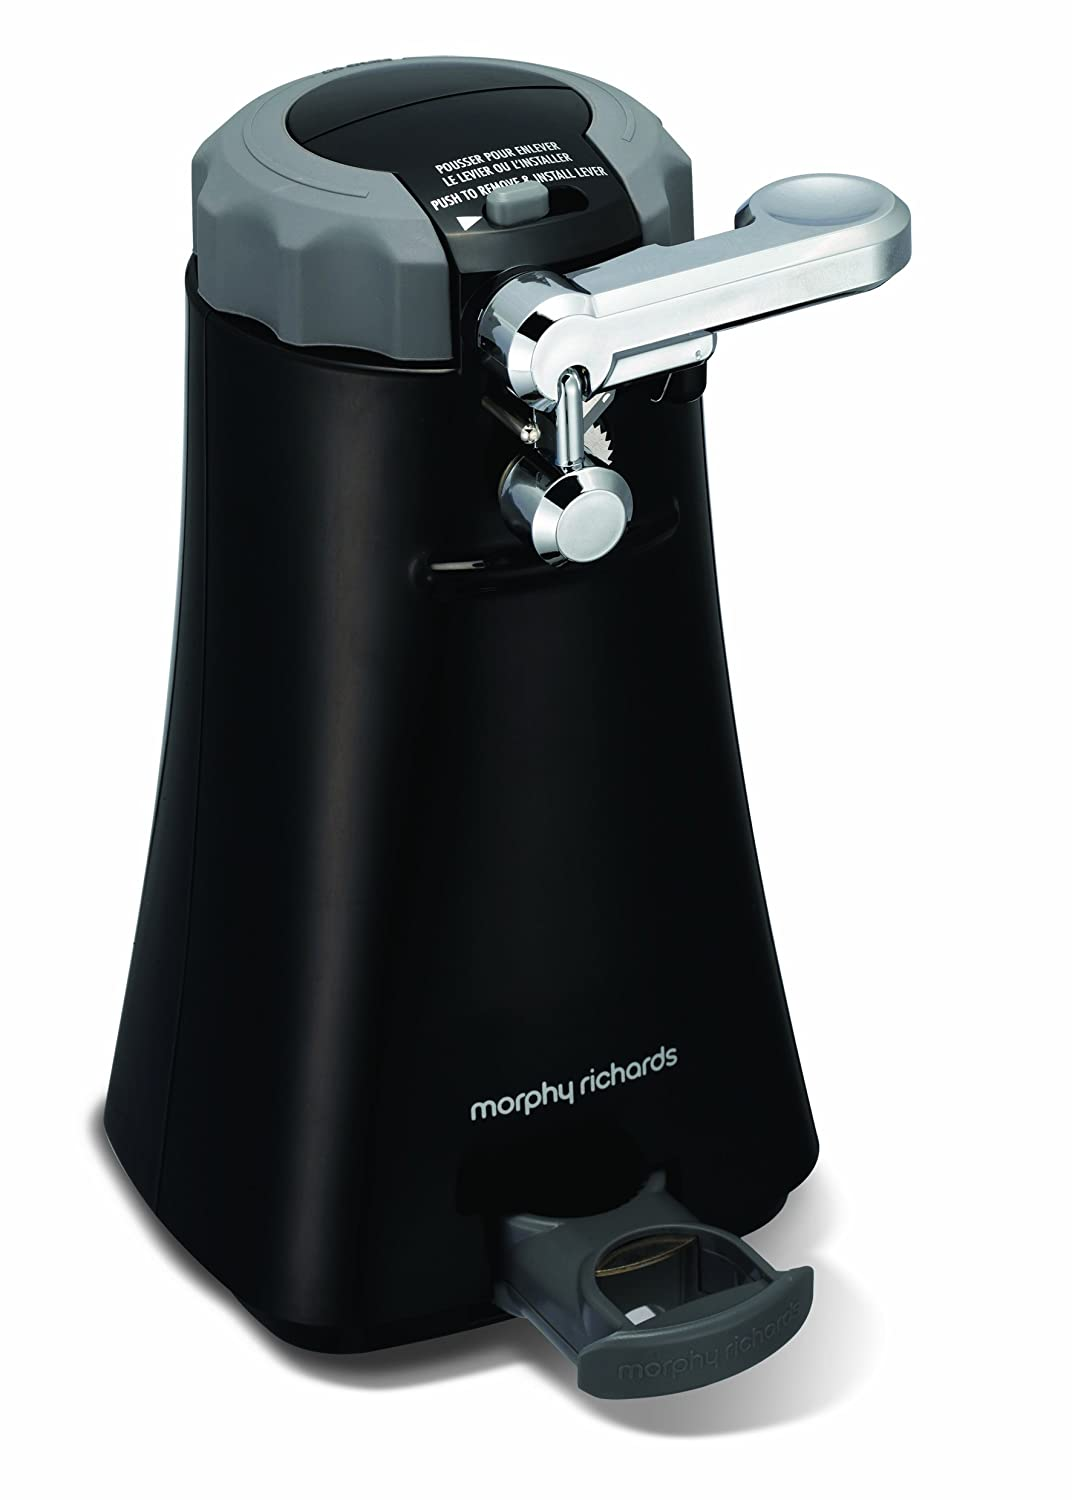 Morphy Richards 46718 - Abrelatas multifunción